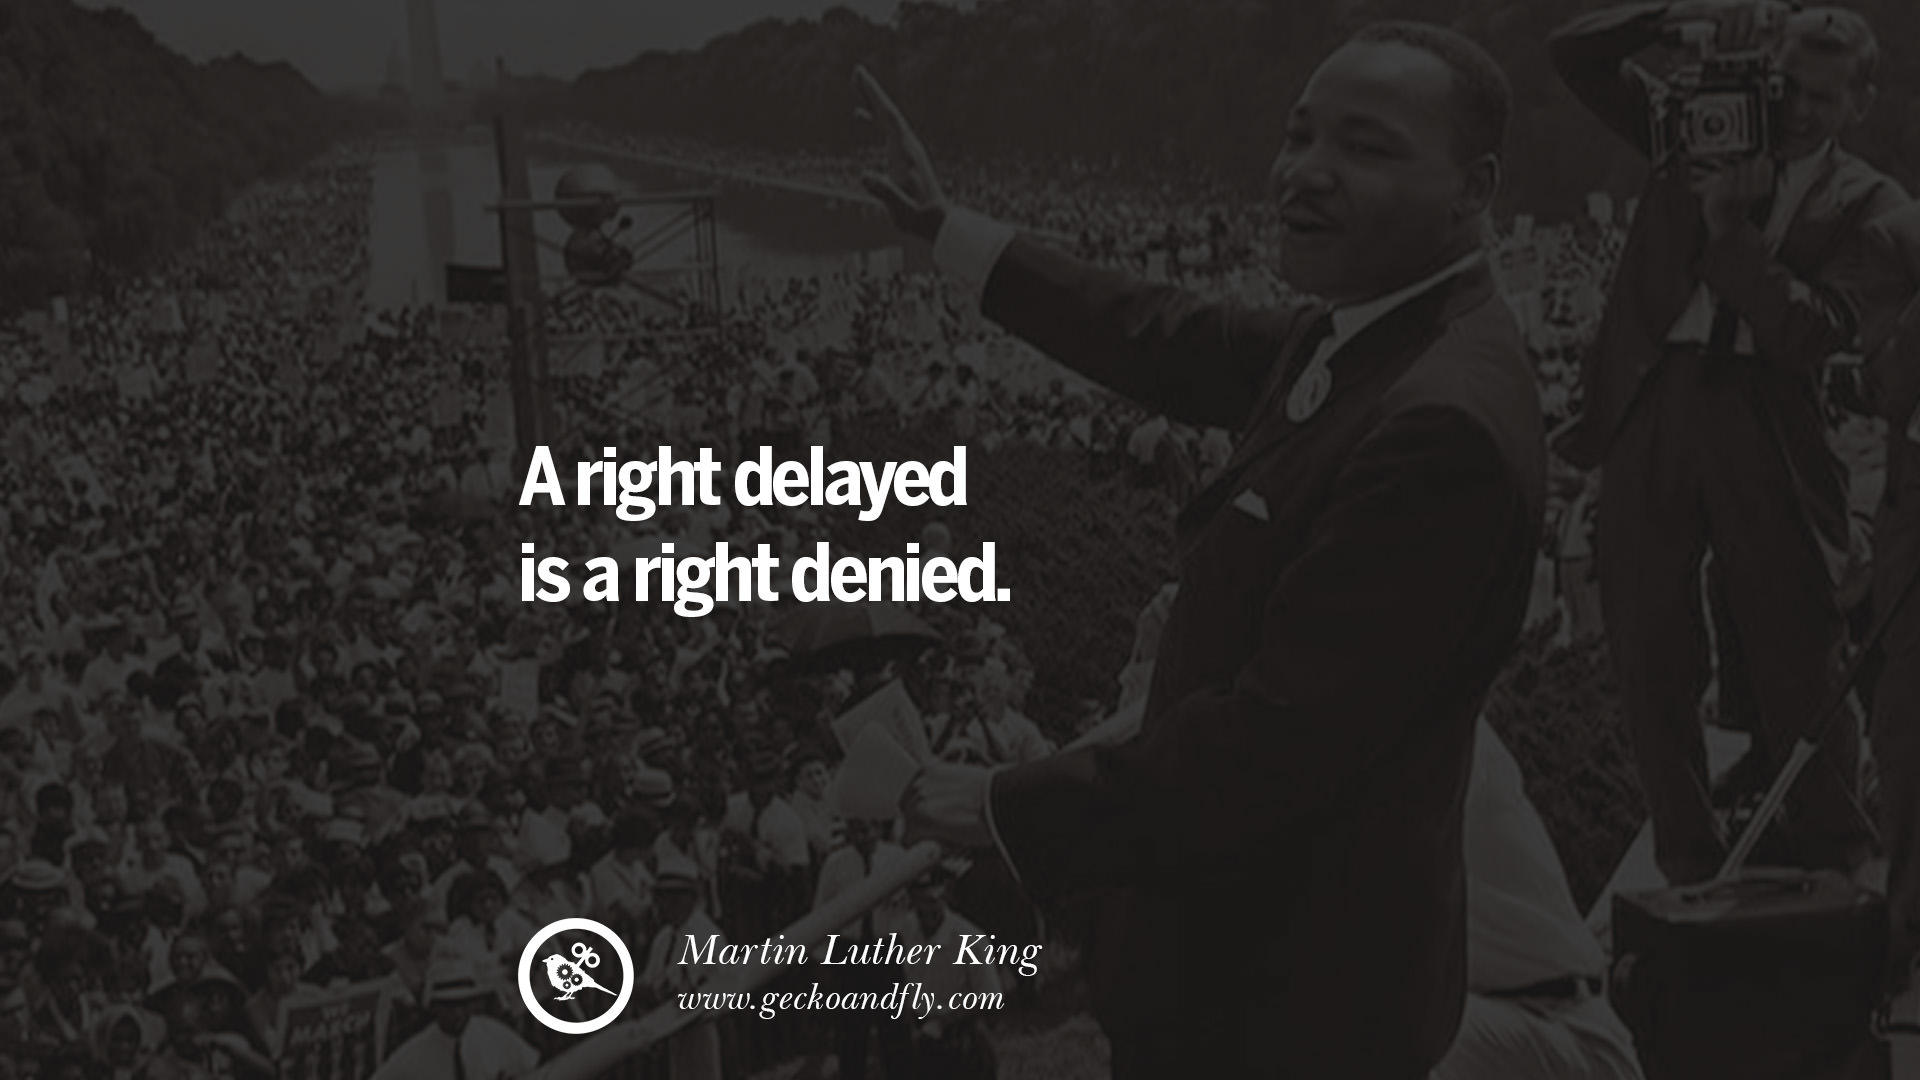 Martin Luther King Quotes Tumblr: 30 Powerful Martin Luther King Jr Quotes On Equality